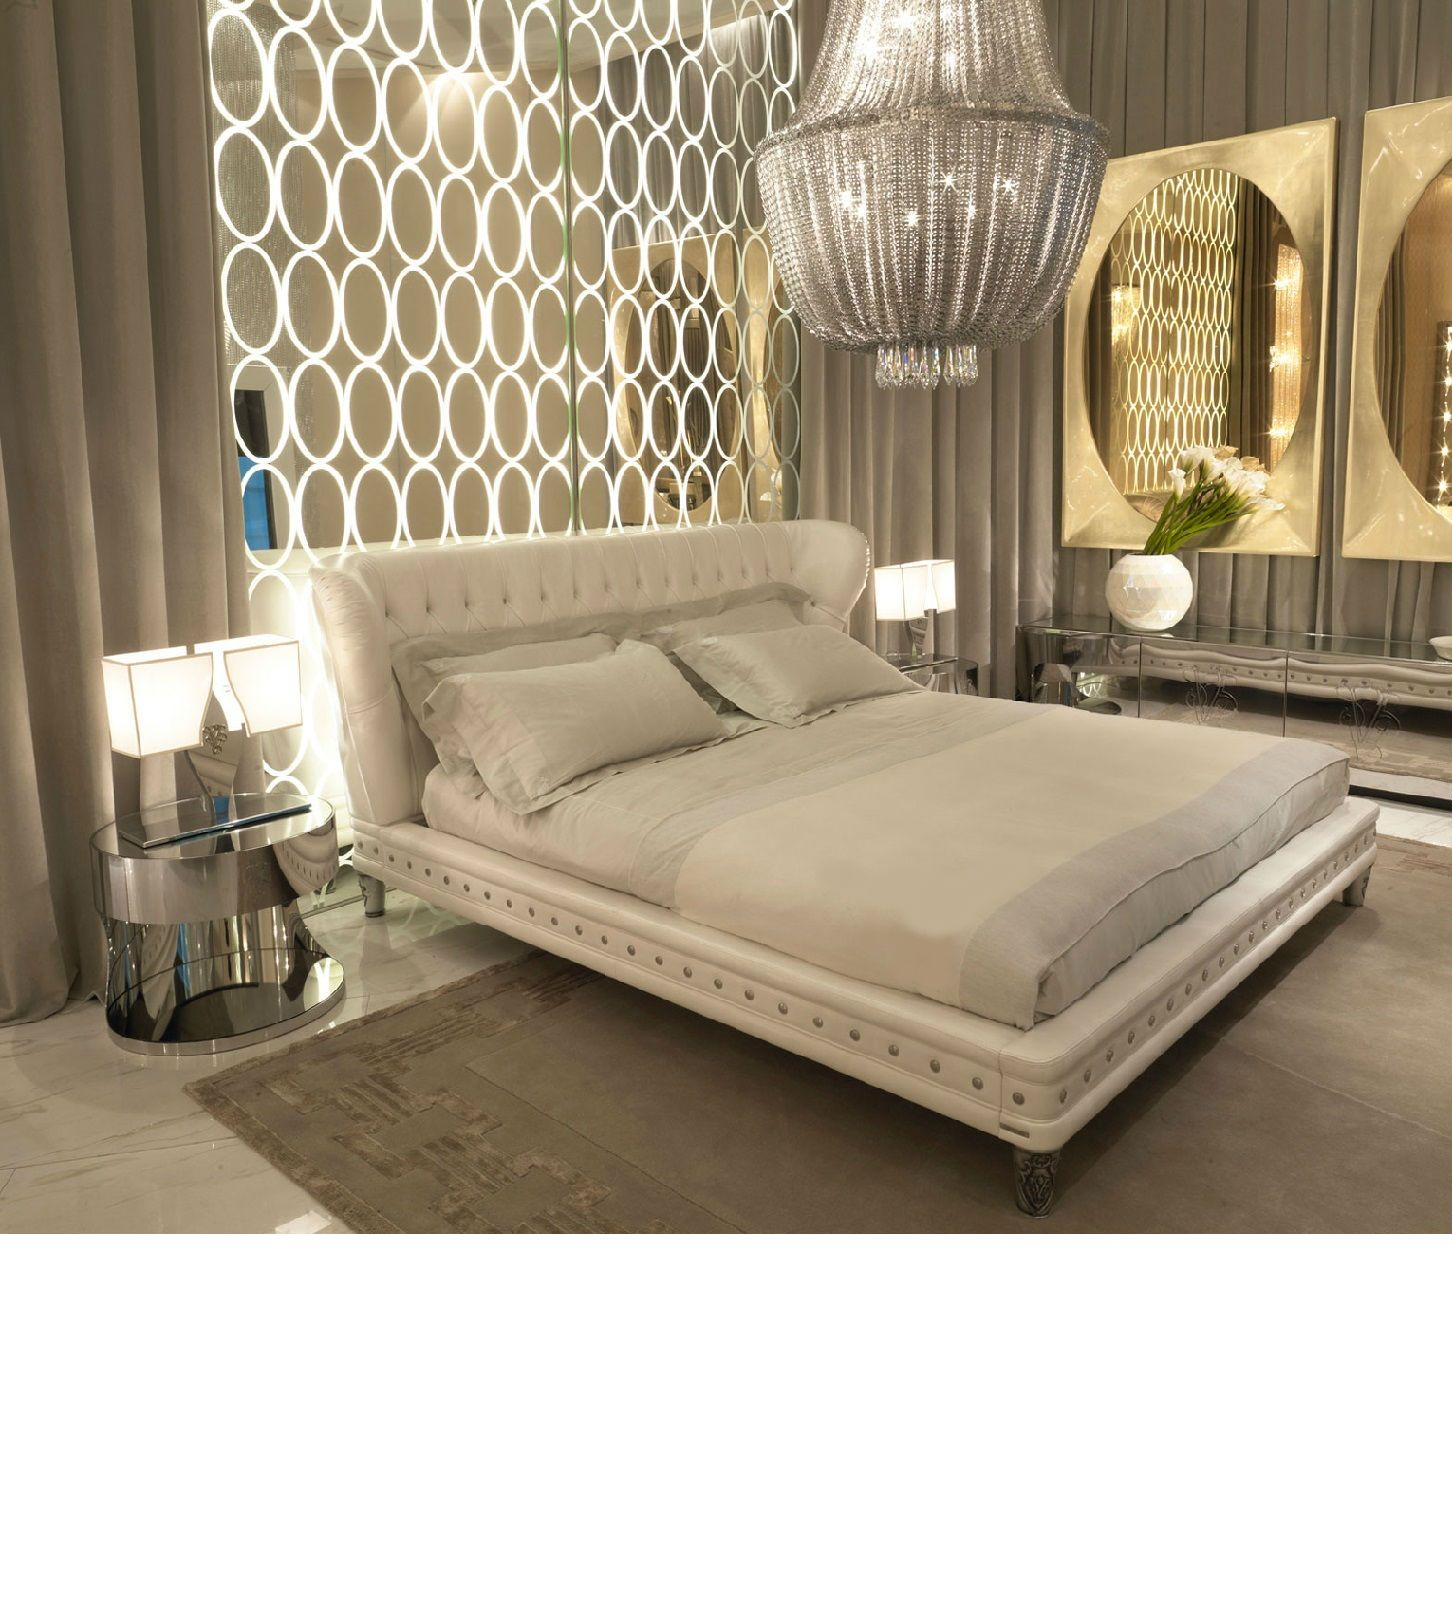 Quot Luxury Bedrooms Quot Quot Luxury Bedroom Furniture Quot Quot Designer